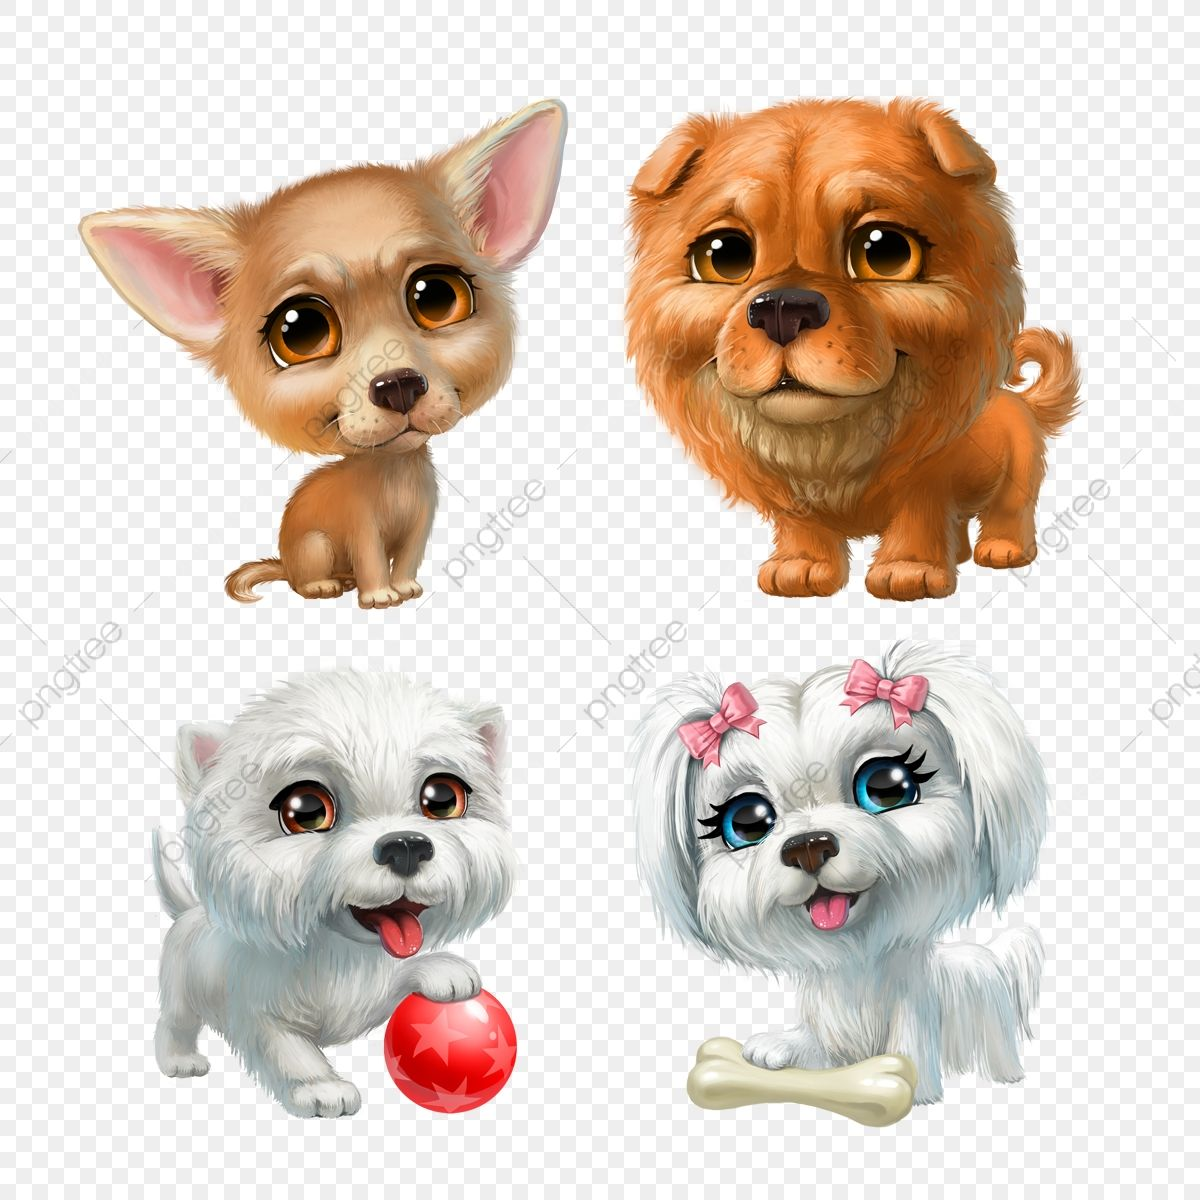 Set Of Puppies Smile Flat Character Png Transparent Clipart Image And Psd File For Free Download Puppy Clipart Cat Artwork Animal Clipart